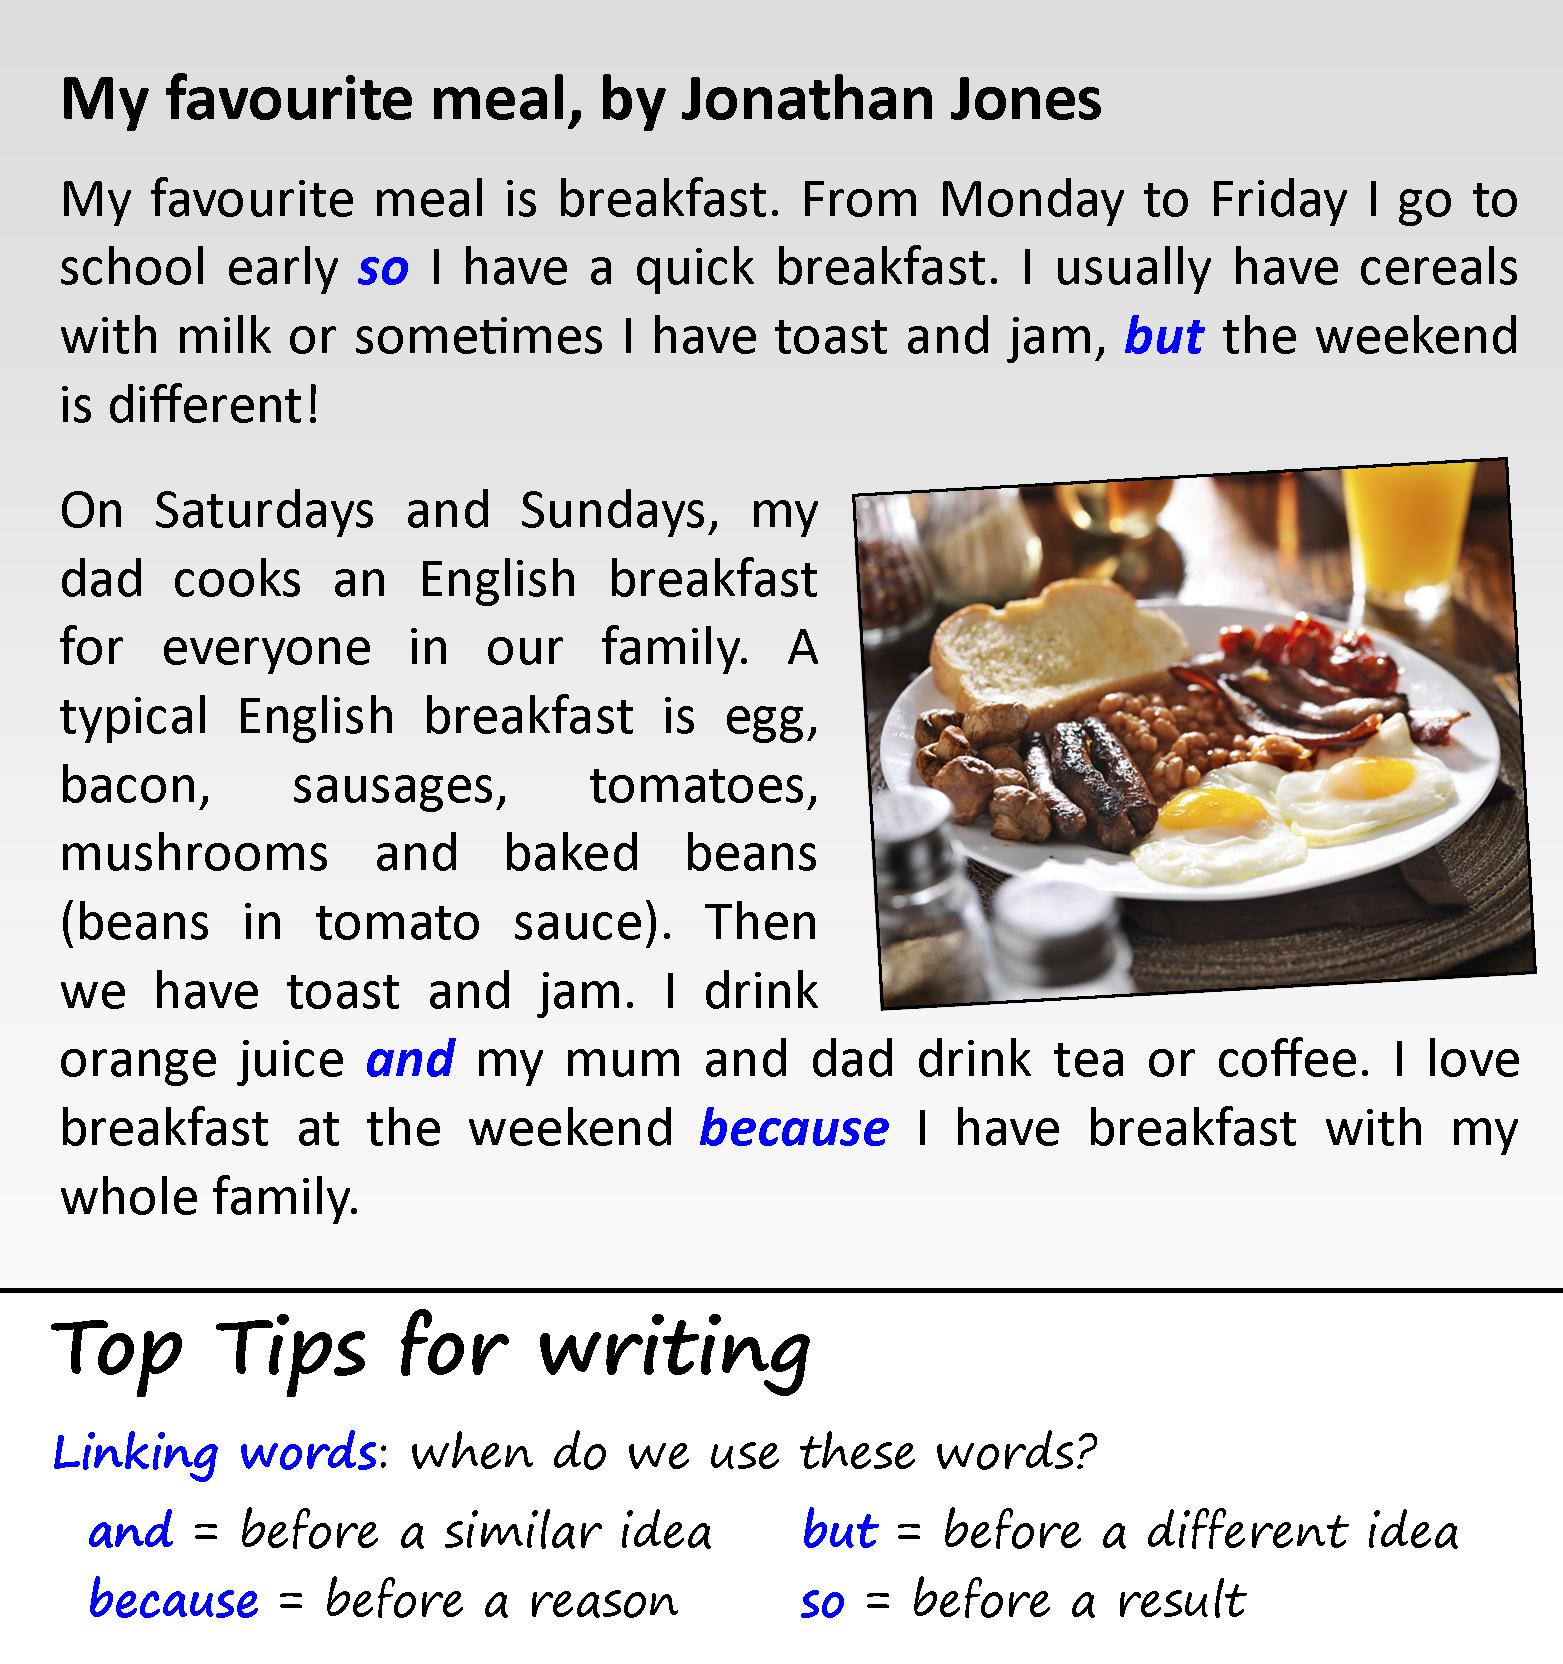 001 Favorite Food Essay My Favourite Meal Awful Ielts Sample Full